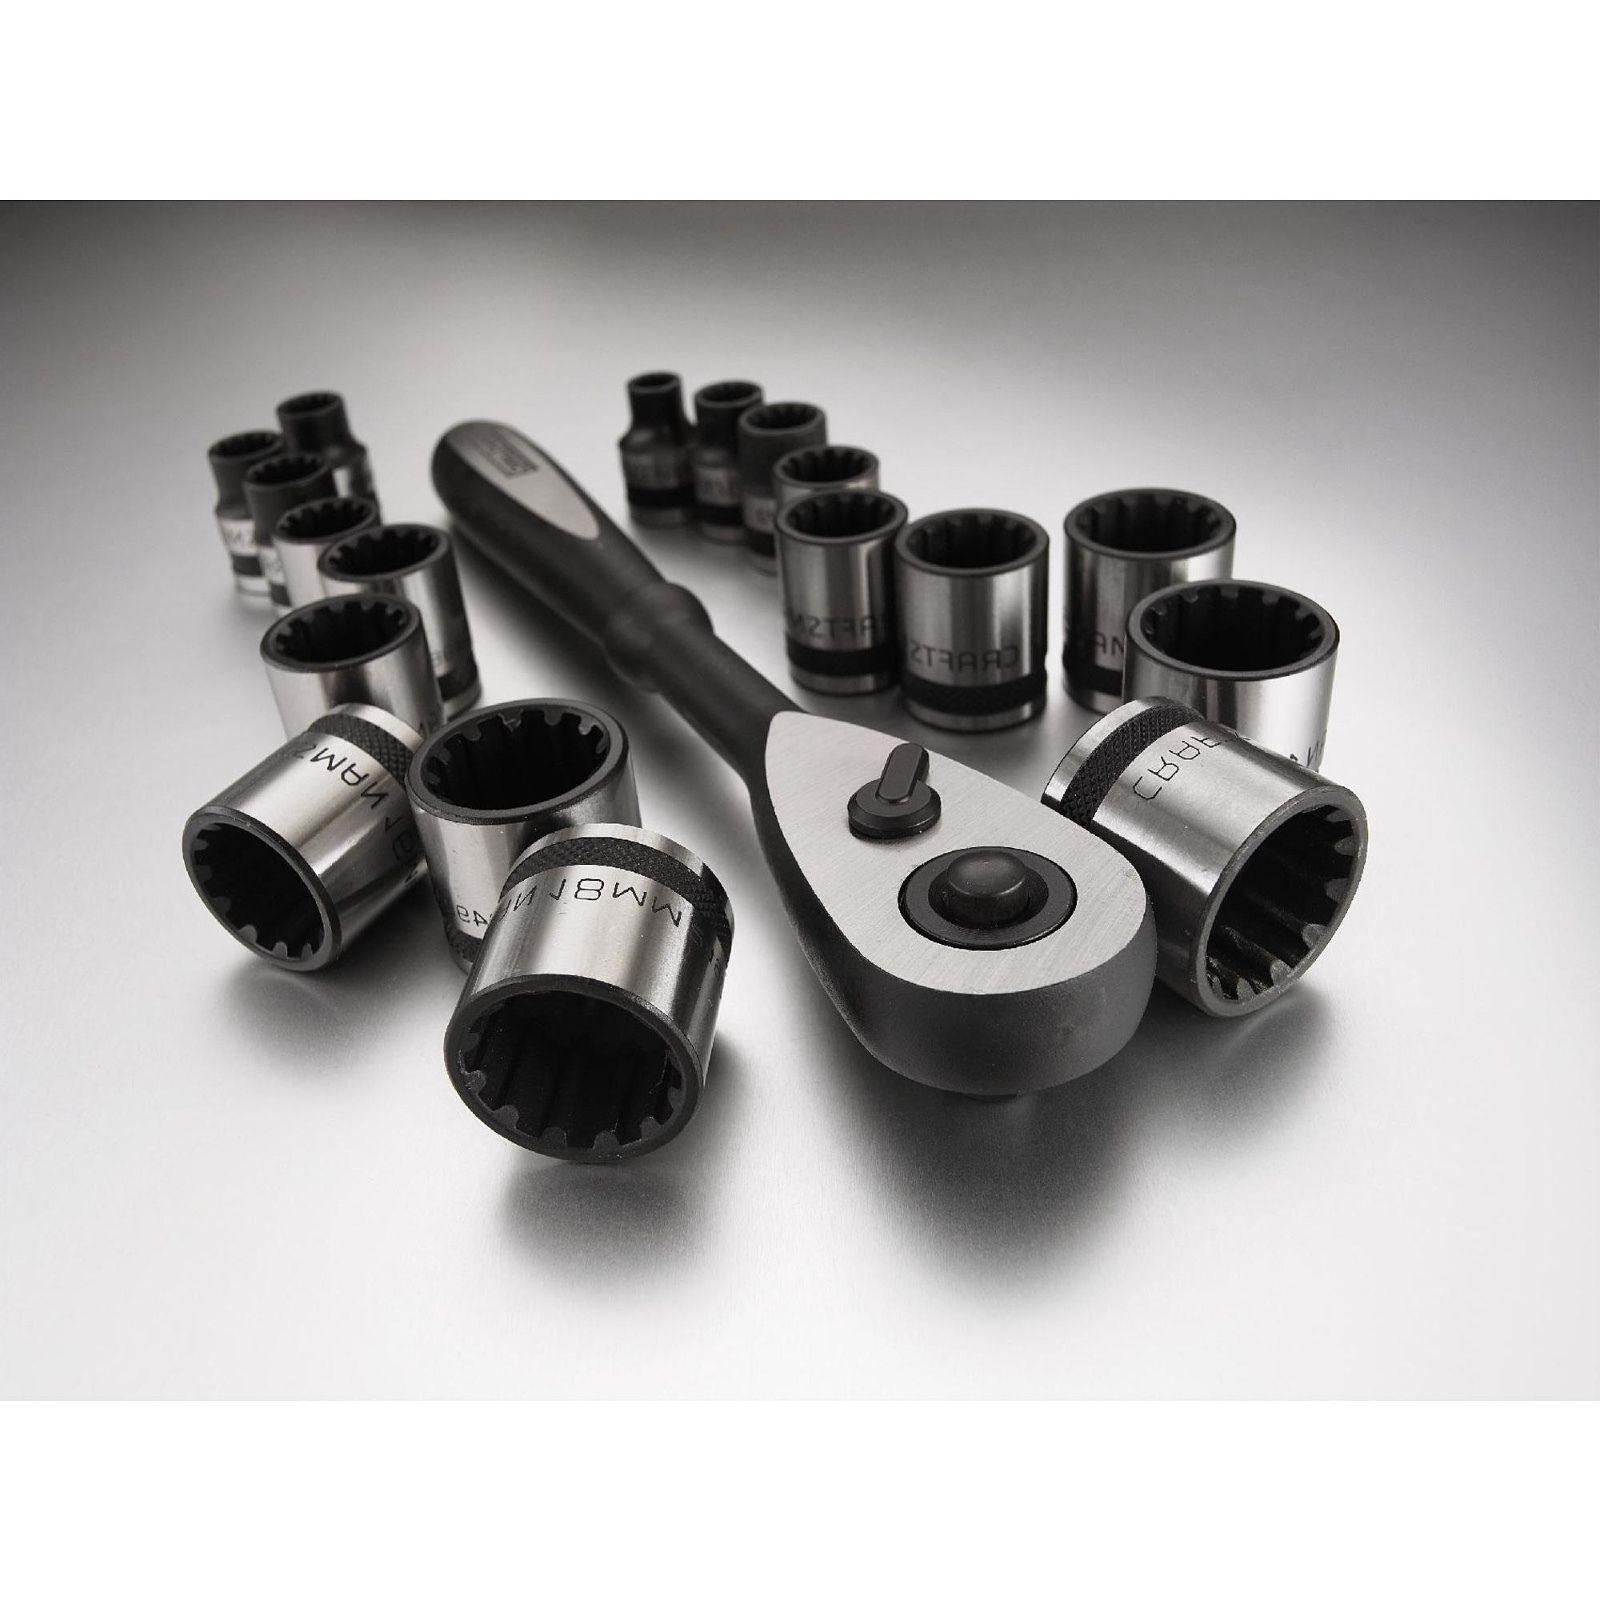 Craftsman Inch and Metric Socket Wrench Set